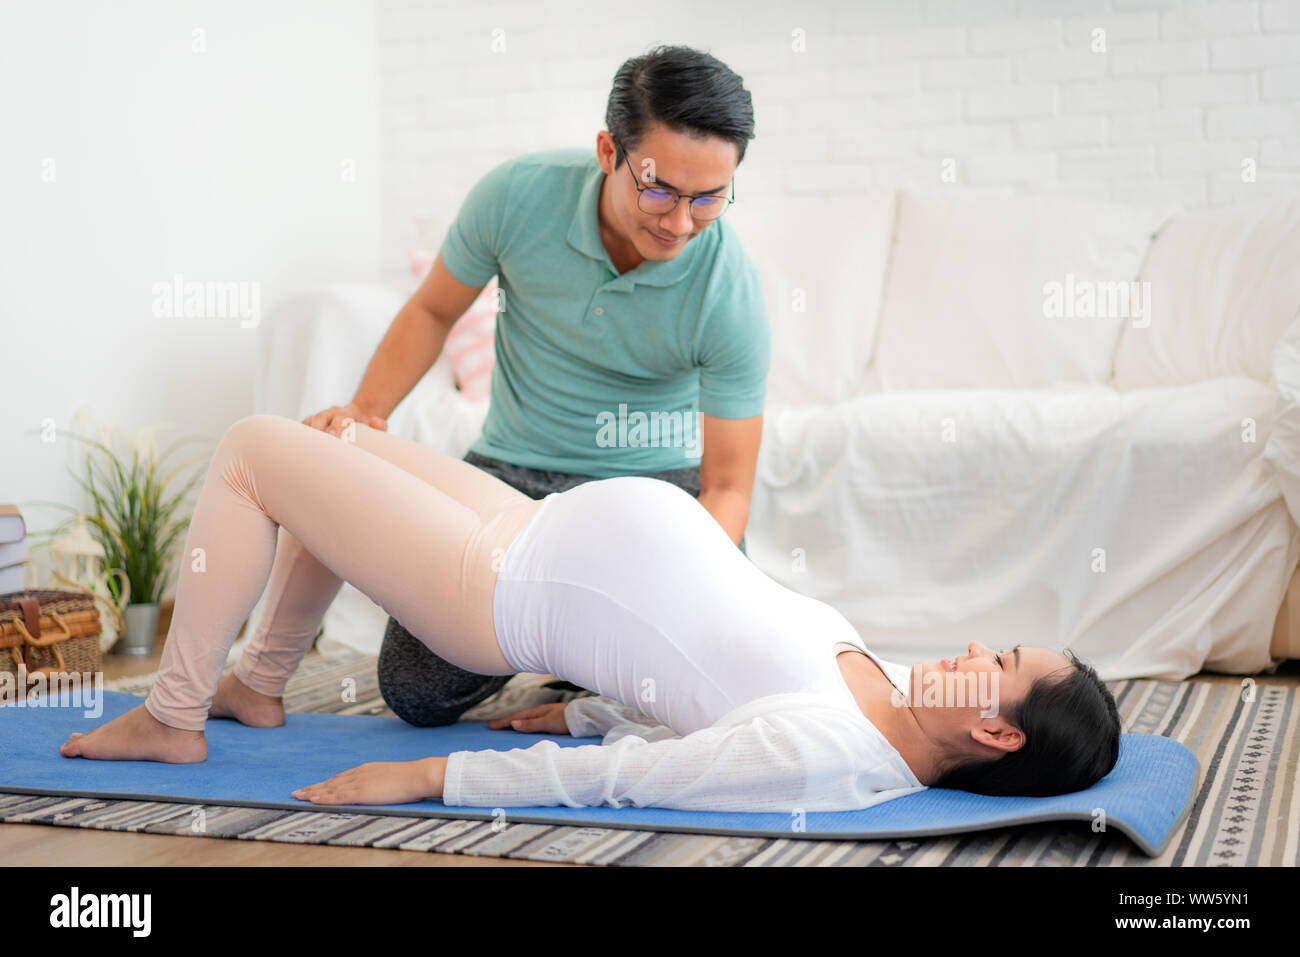 Asian young Husband help his wife exercise by yoga in living room at house. Happy family concept. Stock Photo